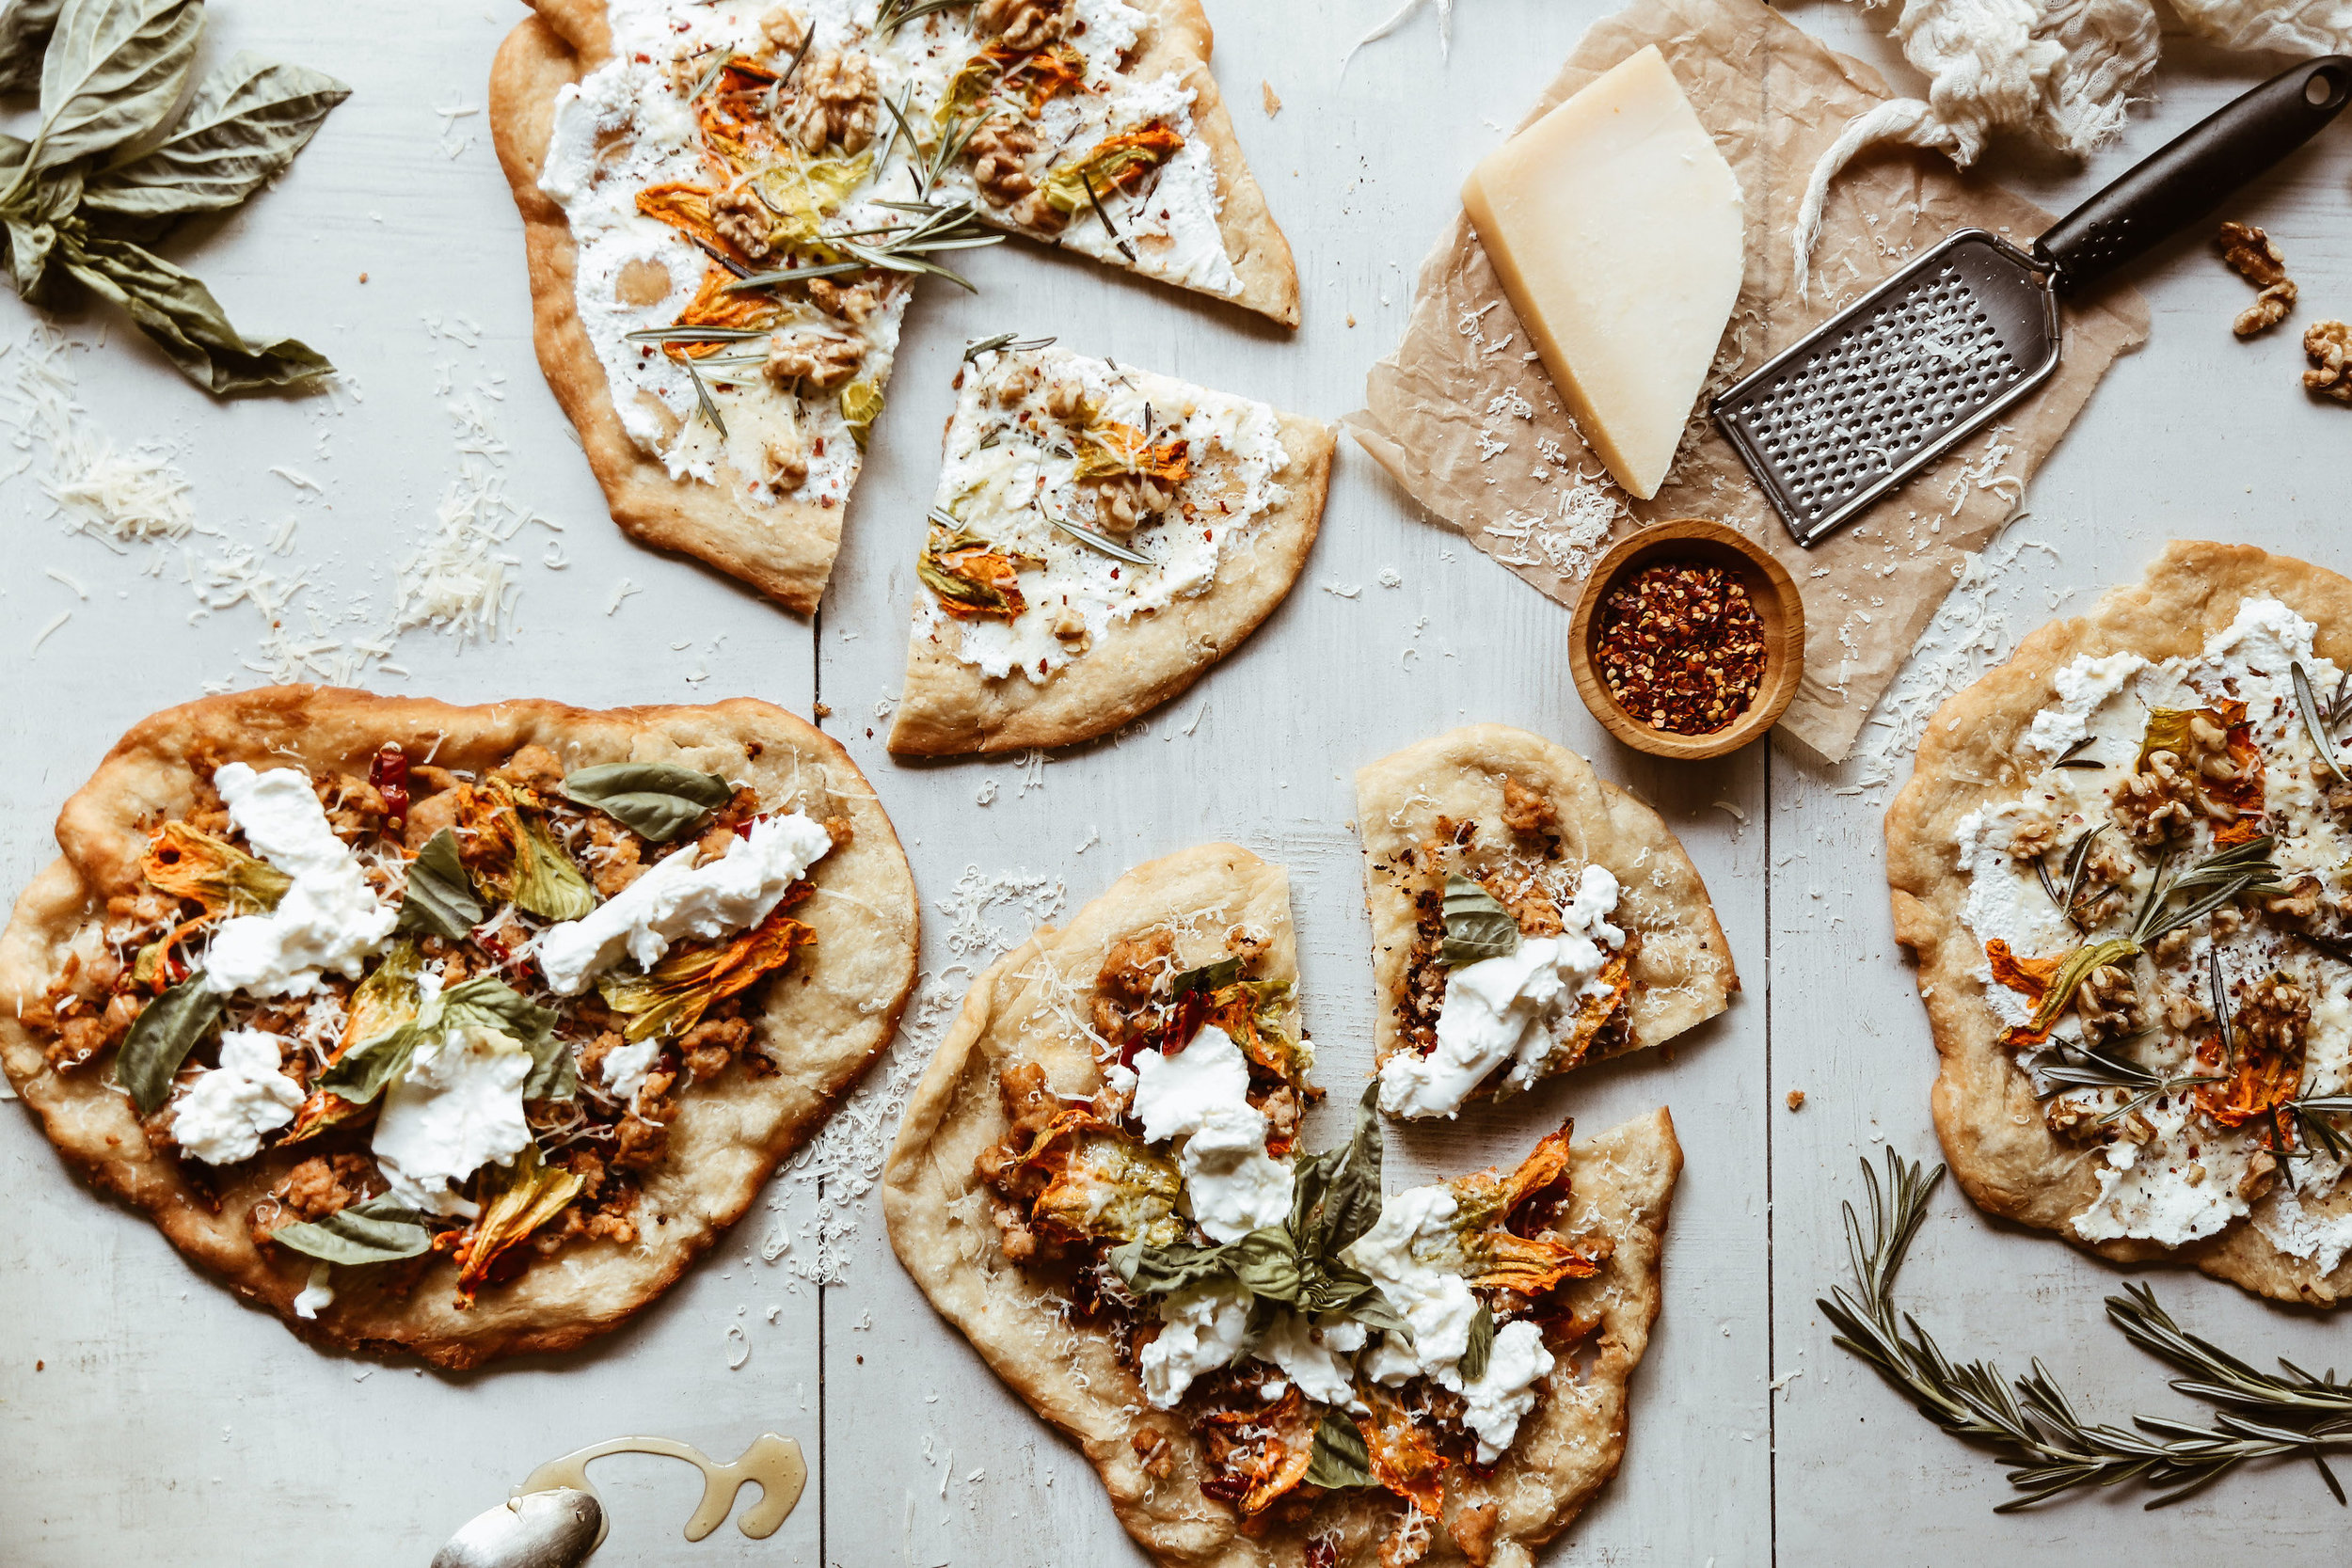 FRied PIZZA WITH SQUASH BLOSSOMS - makes 4 pizzas